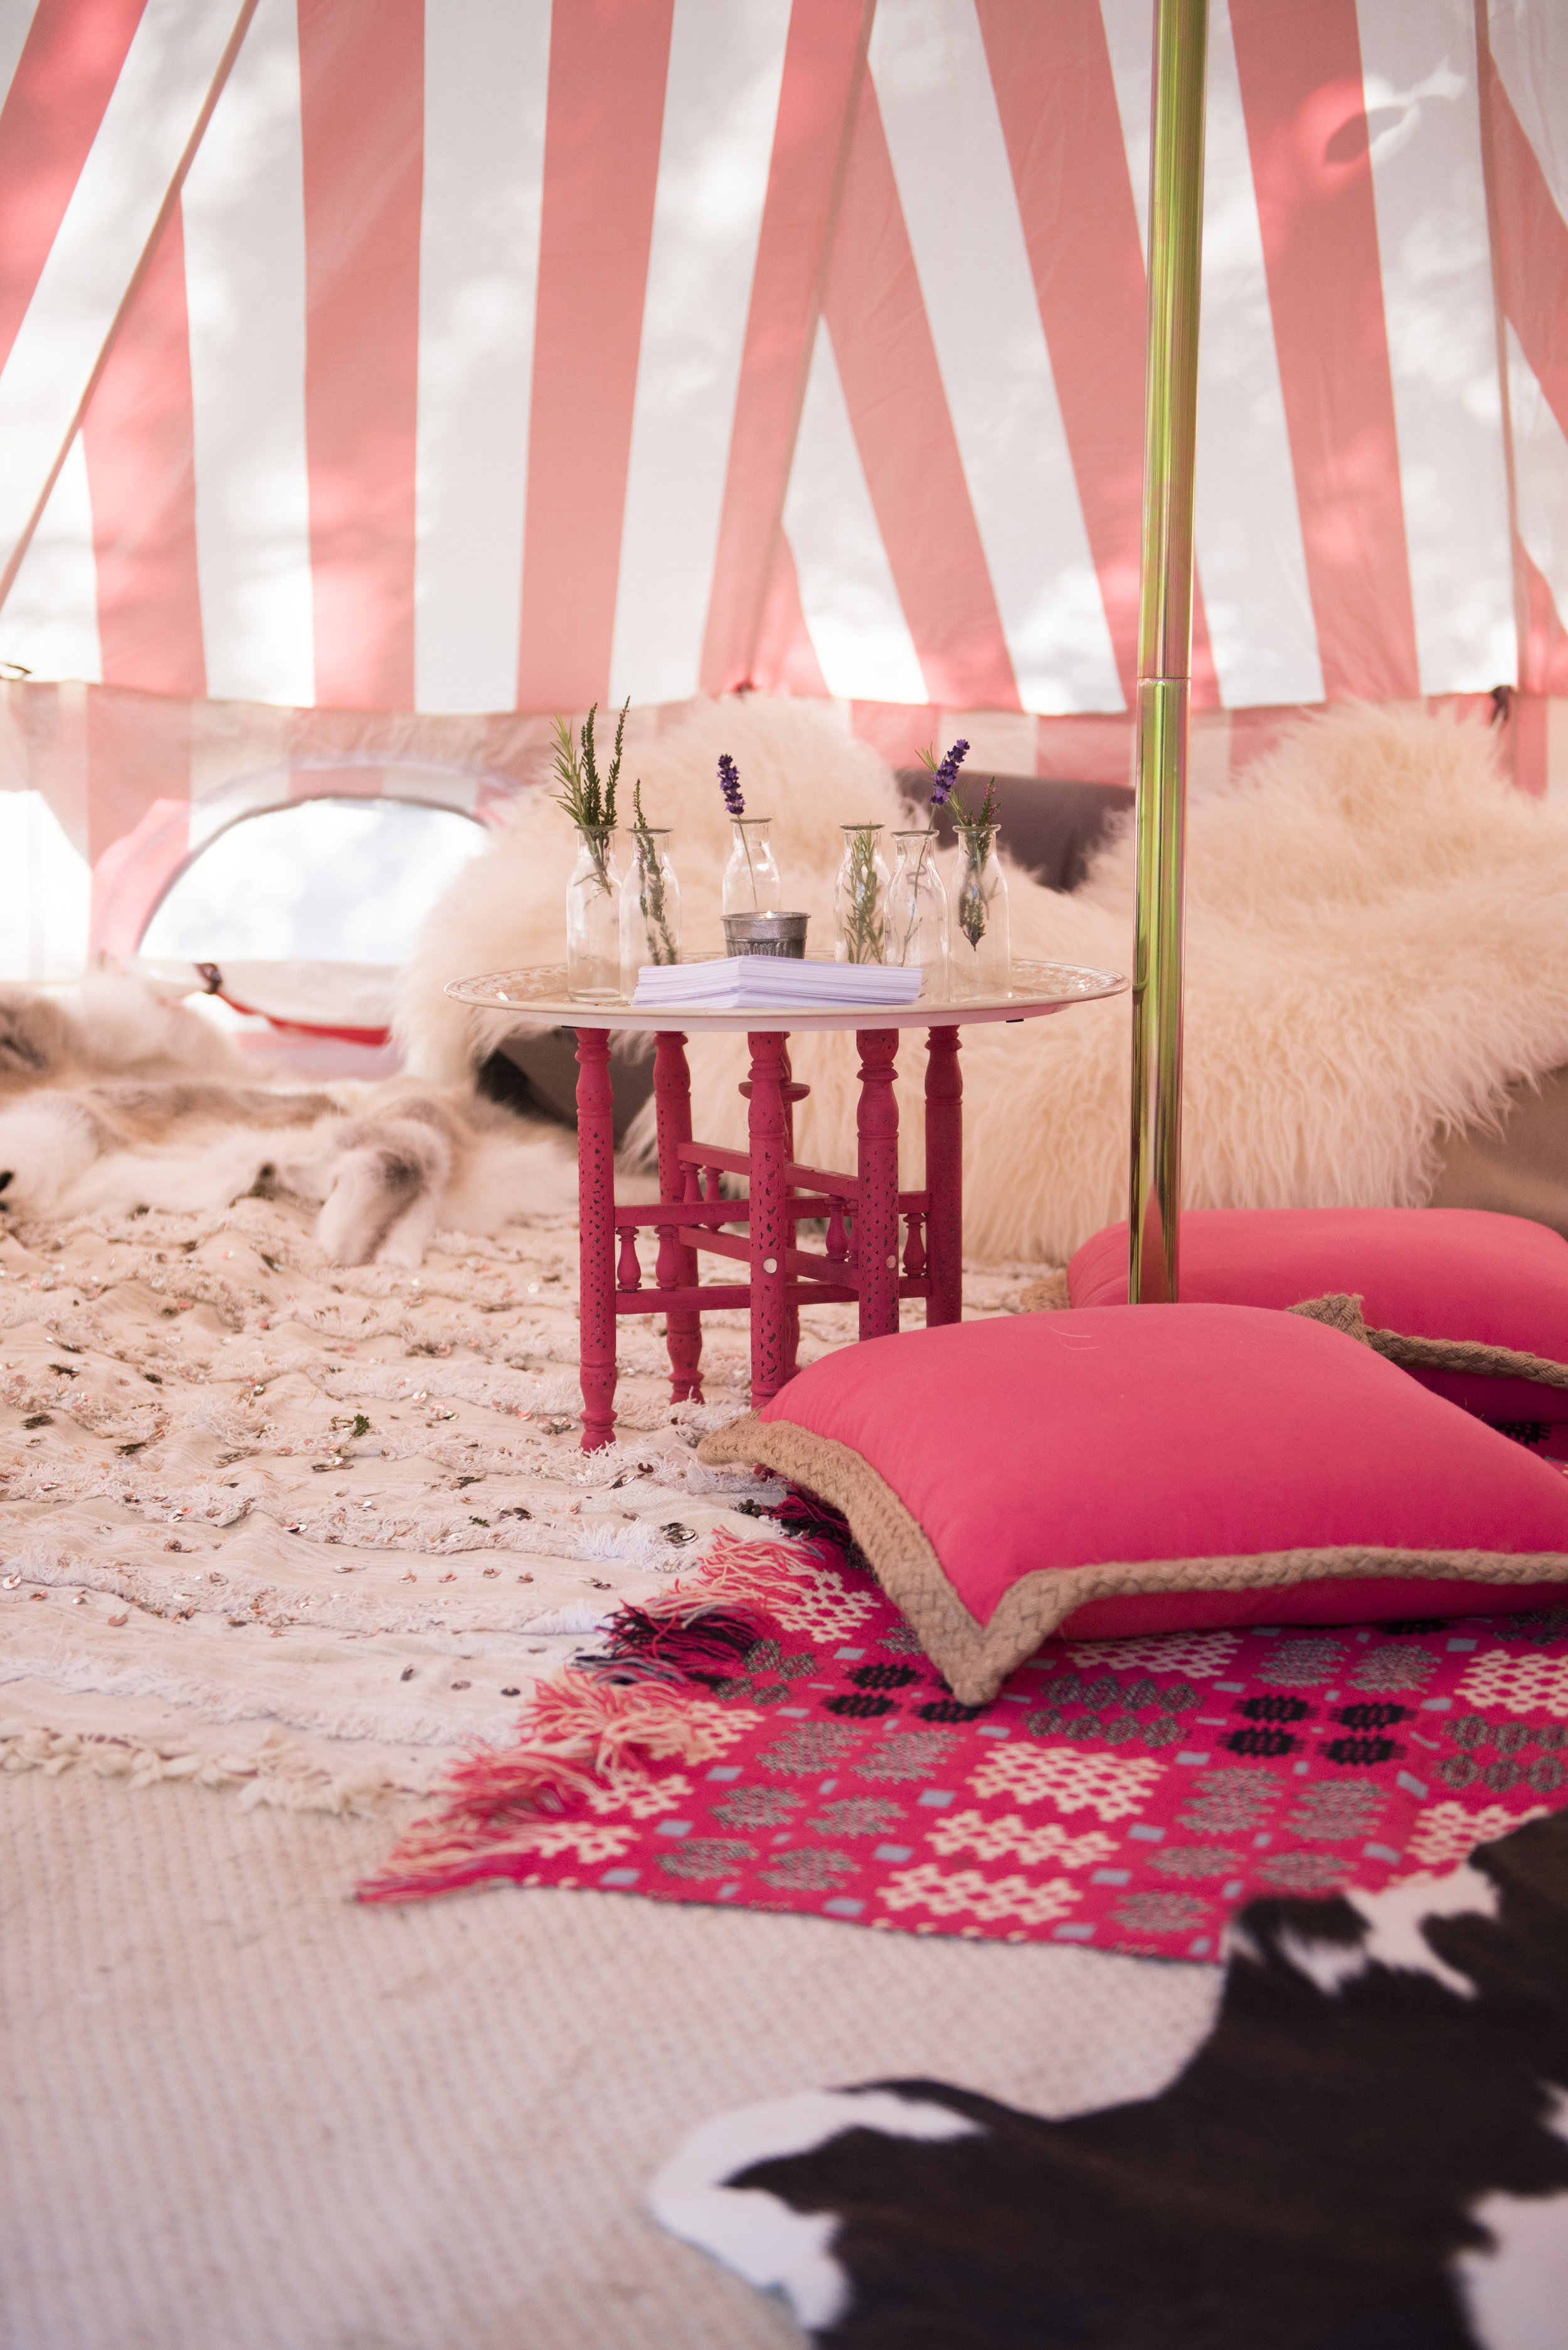 Our insta meet up at the last Occasional Home Store was provided by the Glam Camping CO. This time we will be indoors but will be creating an equally stylish space for instagram hook ups!